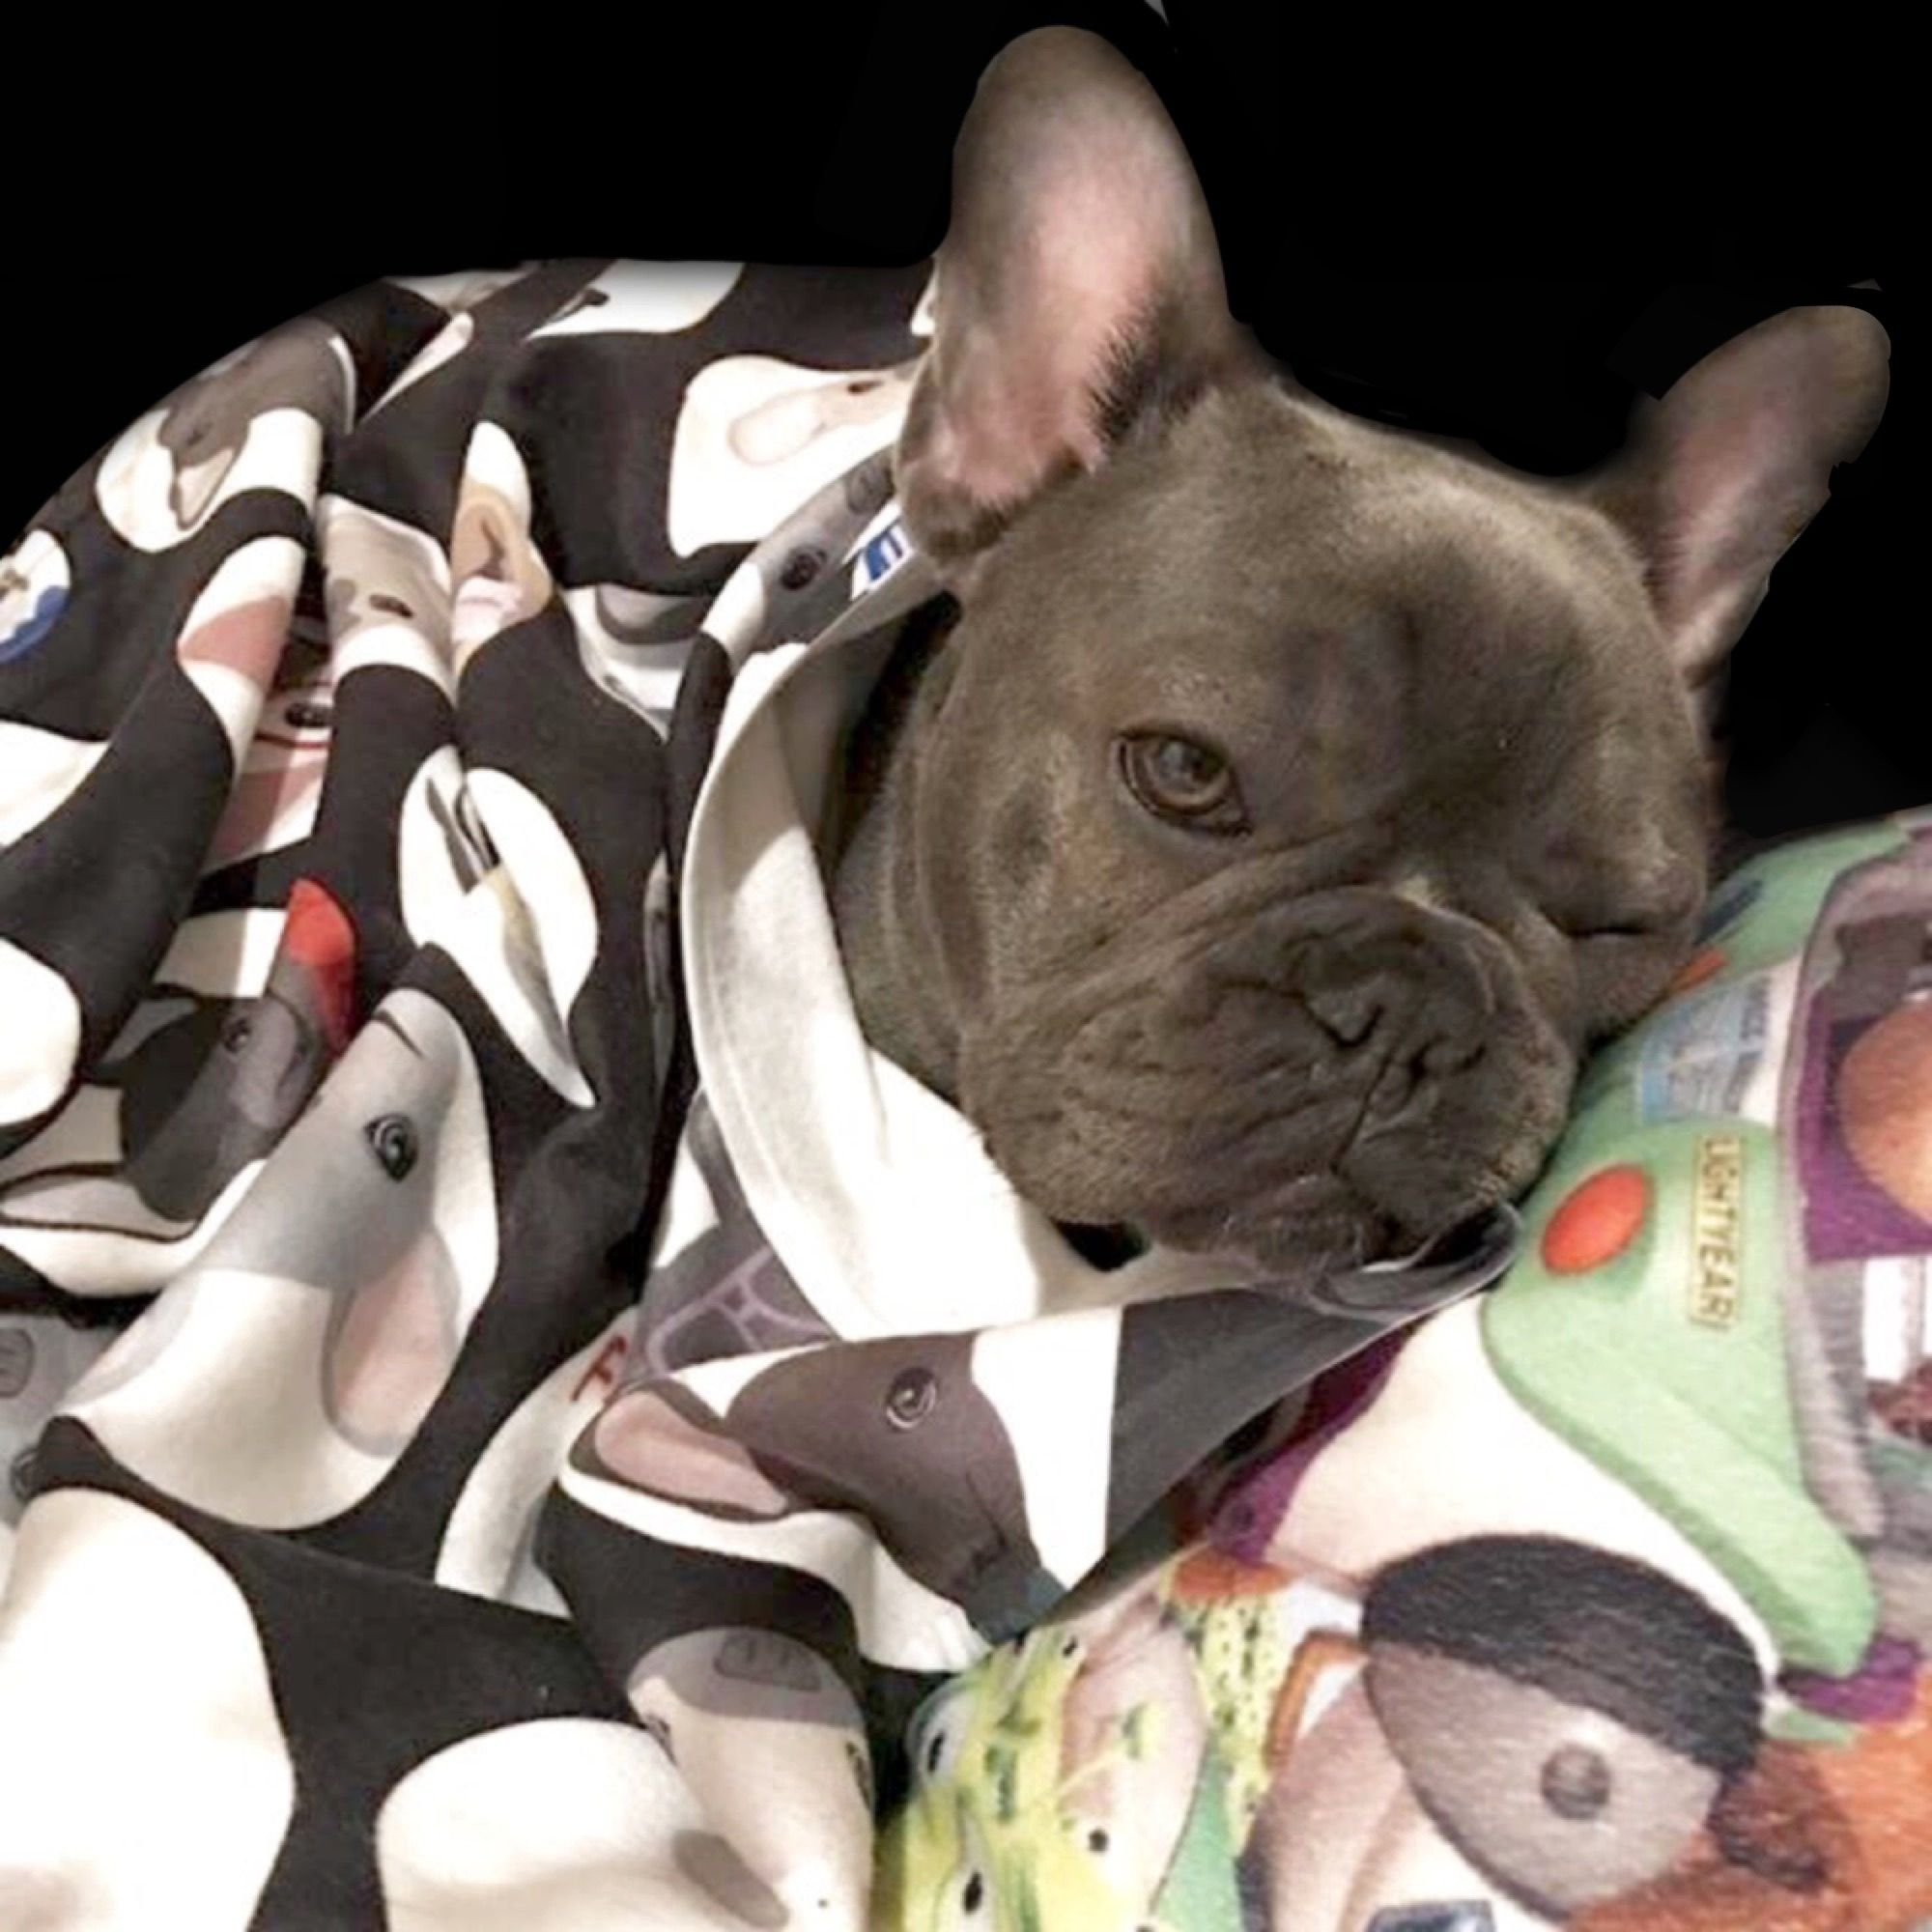 French Bulldog asleep on a Blanket from the Frenchie Store